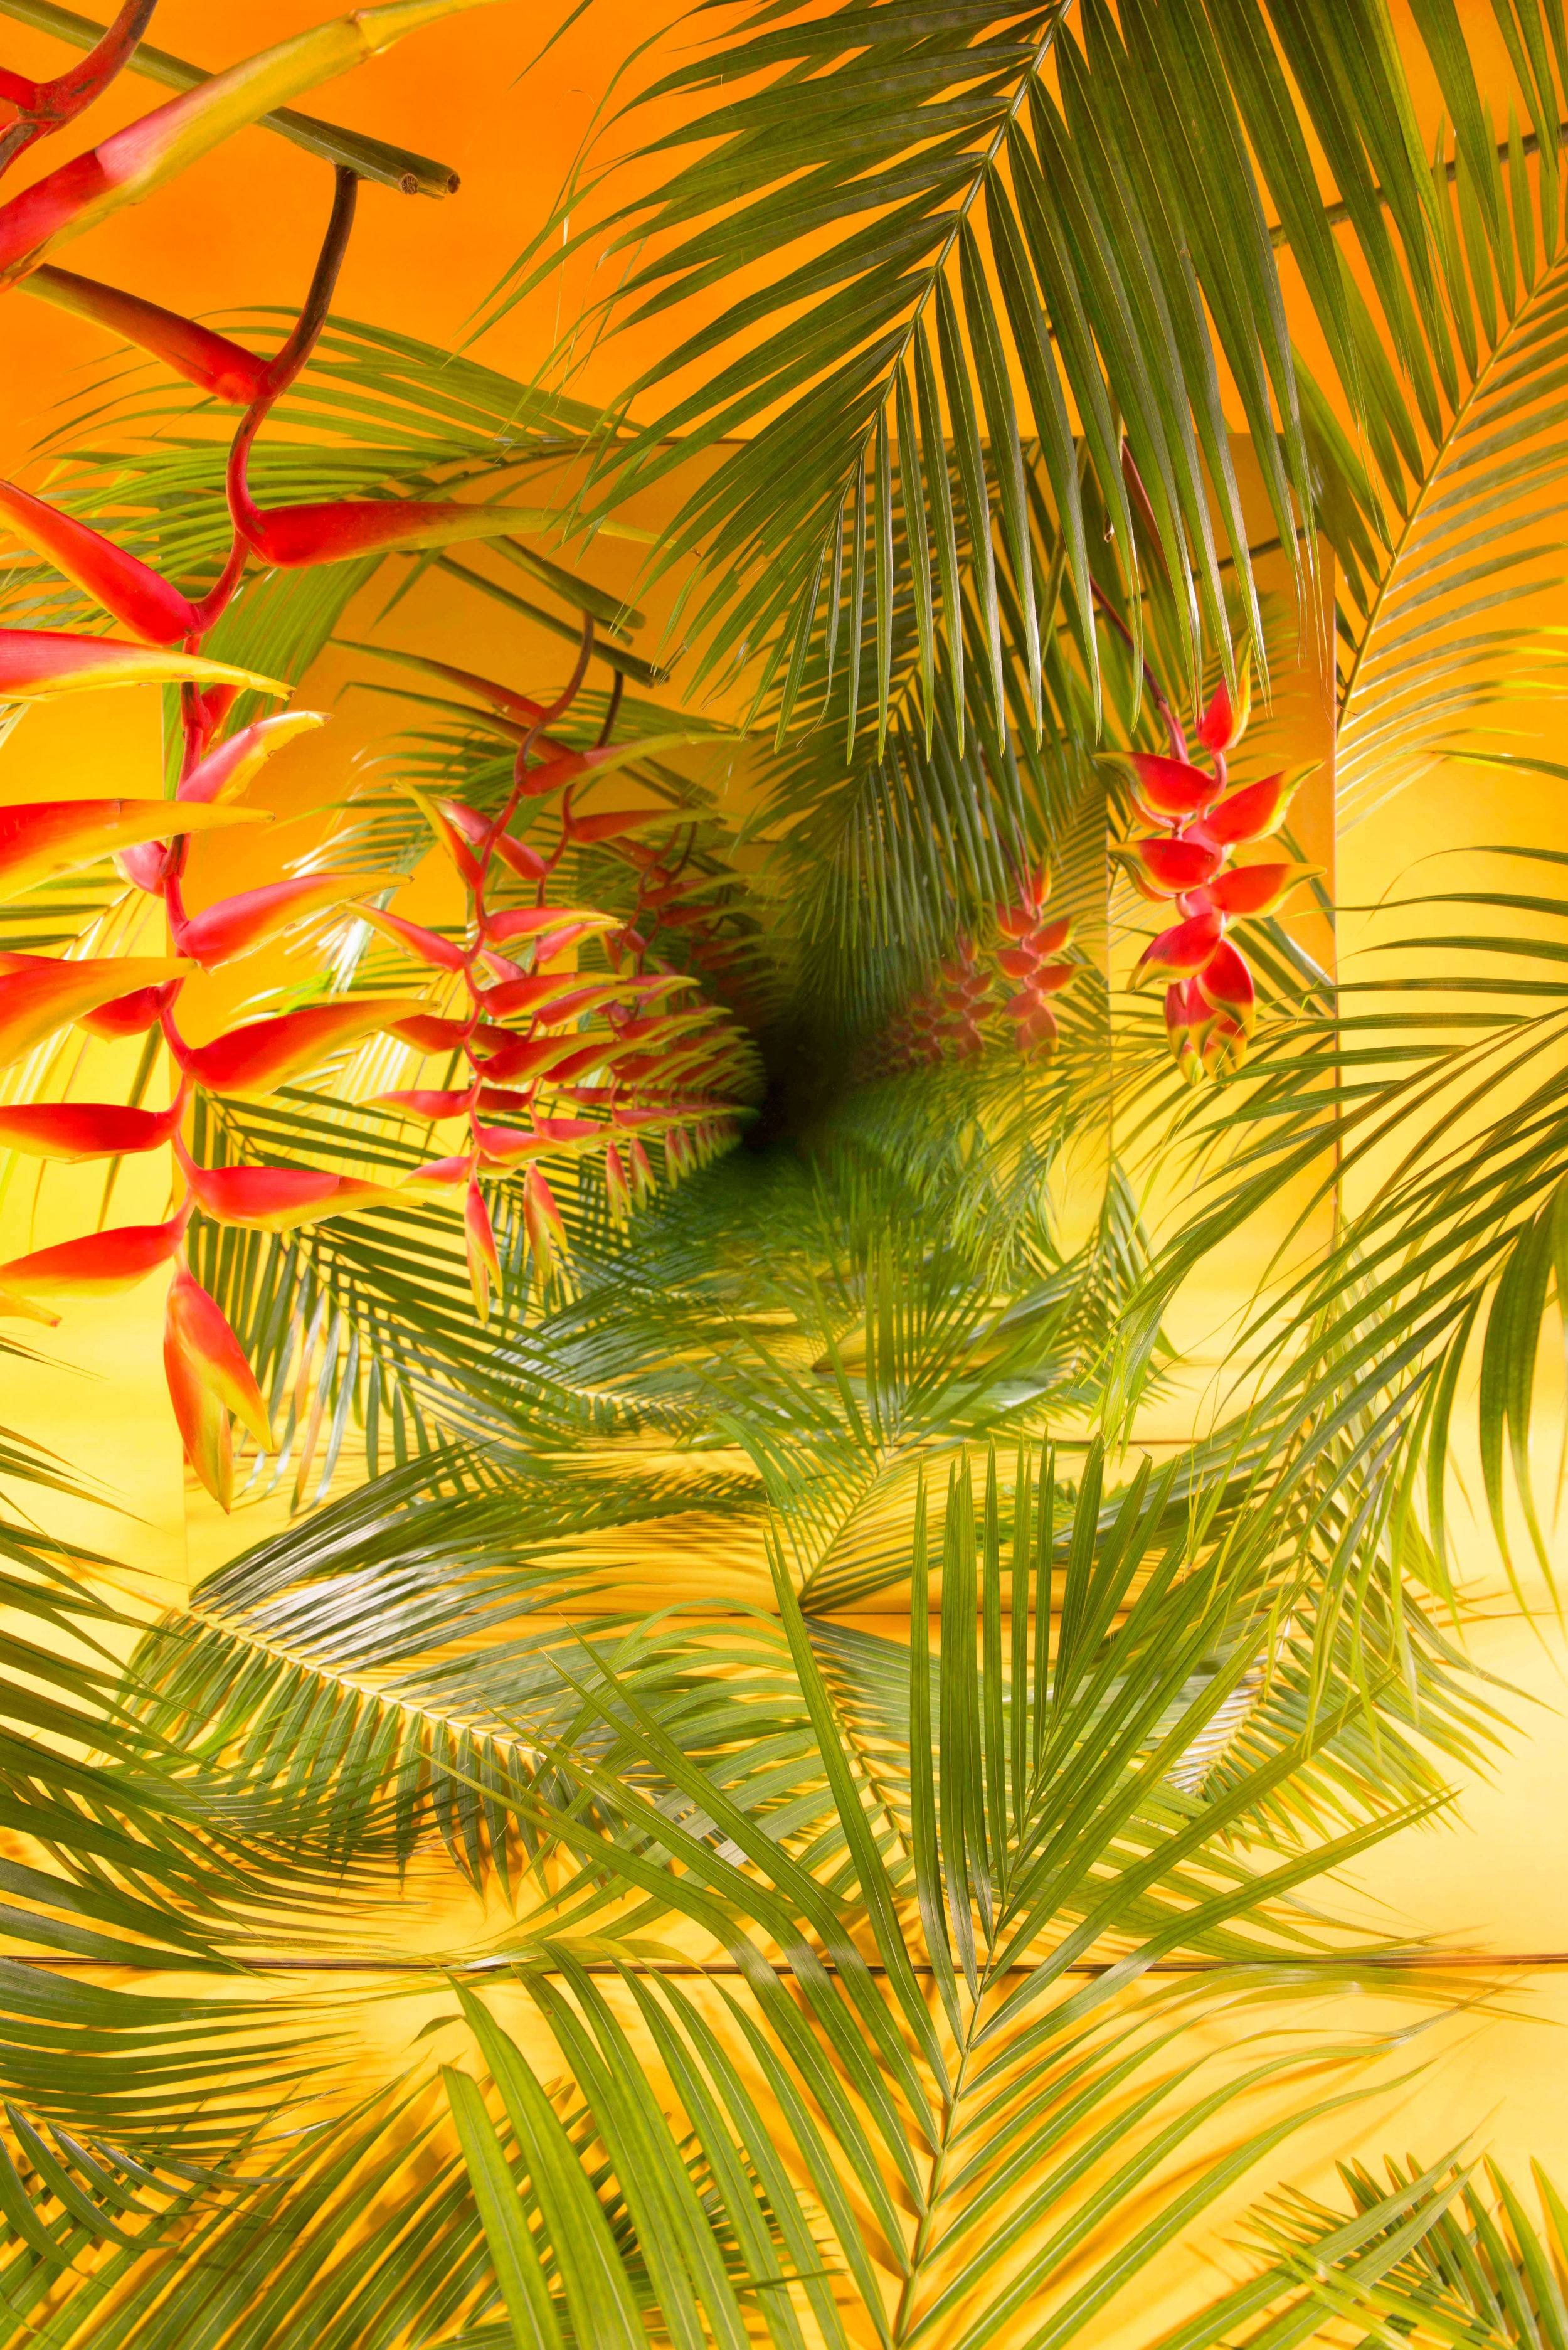 """SARAH MEYOHAS. """"TROPICAL SPECULATION"""" (2018). CHROMOGENIC PRINT. 40 X 60 INCHES. COURTESY OF THE ARTIST."""